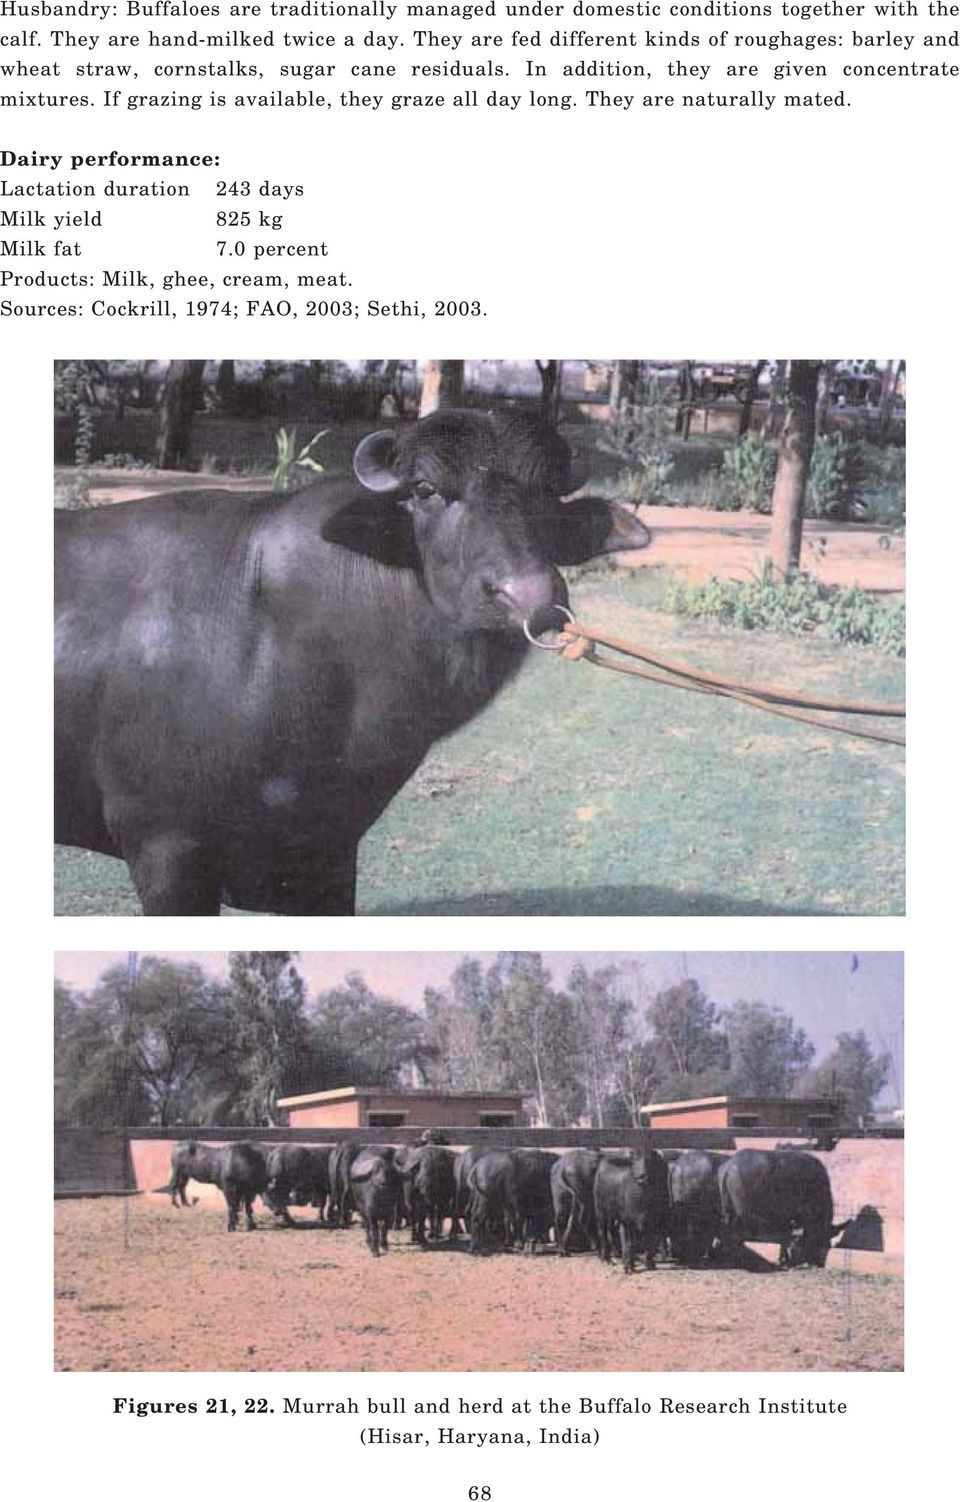 Chapter III BUFFALO BREEDS AND MANAGEMENT SYSTEMS  Bianca